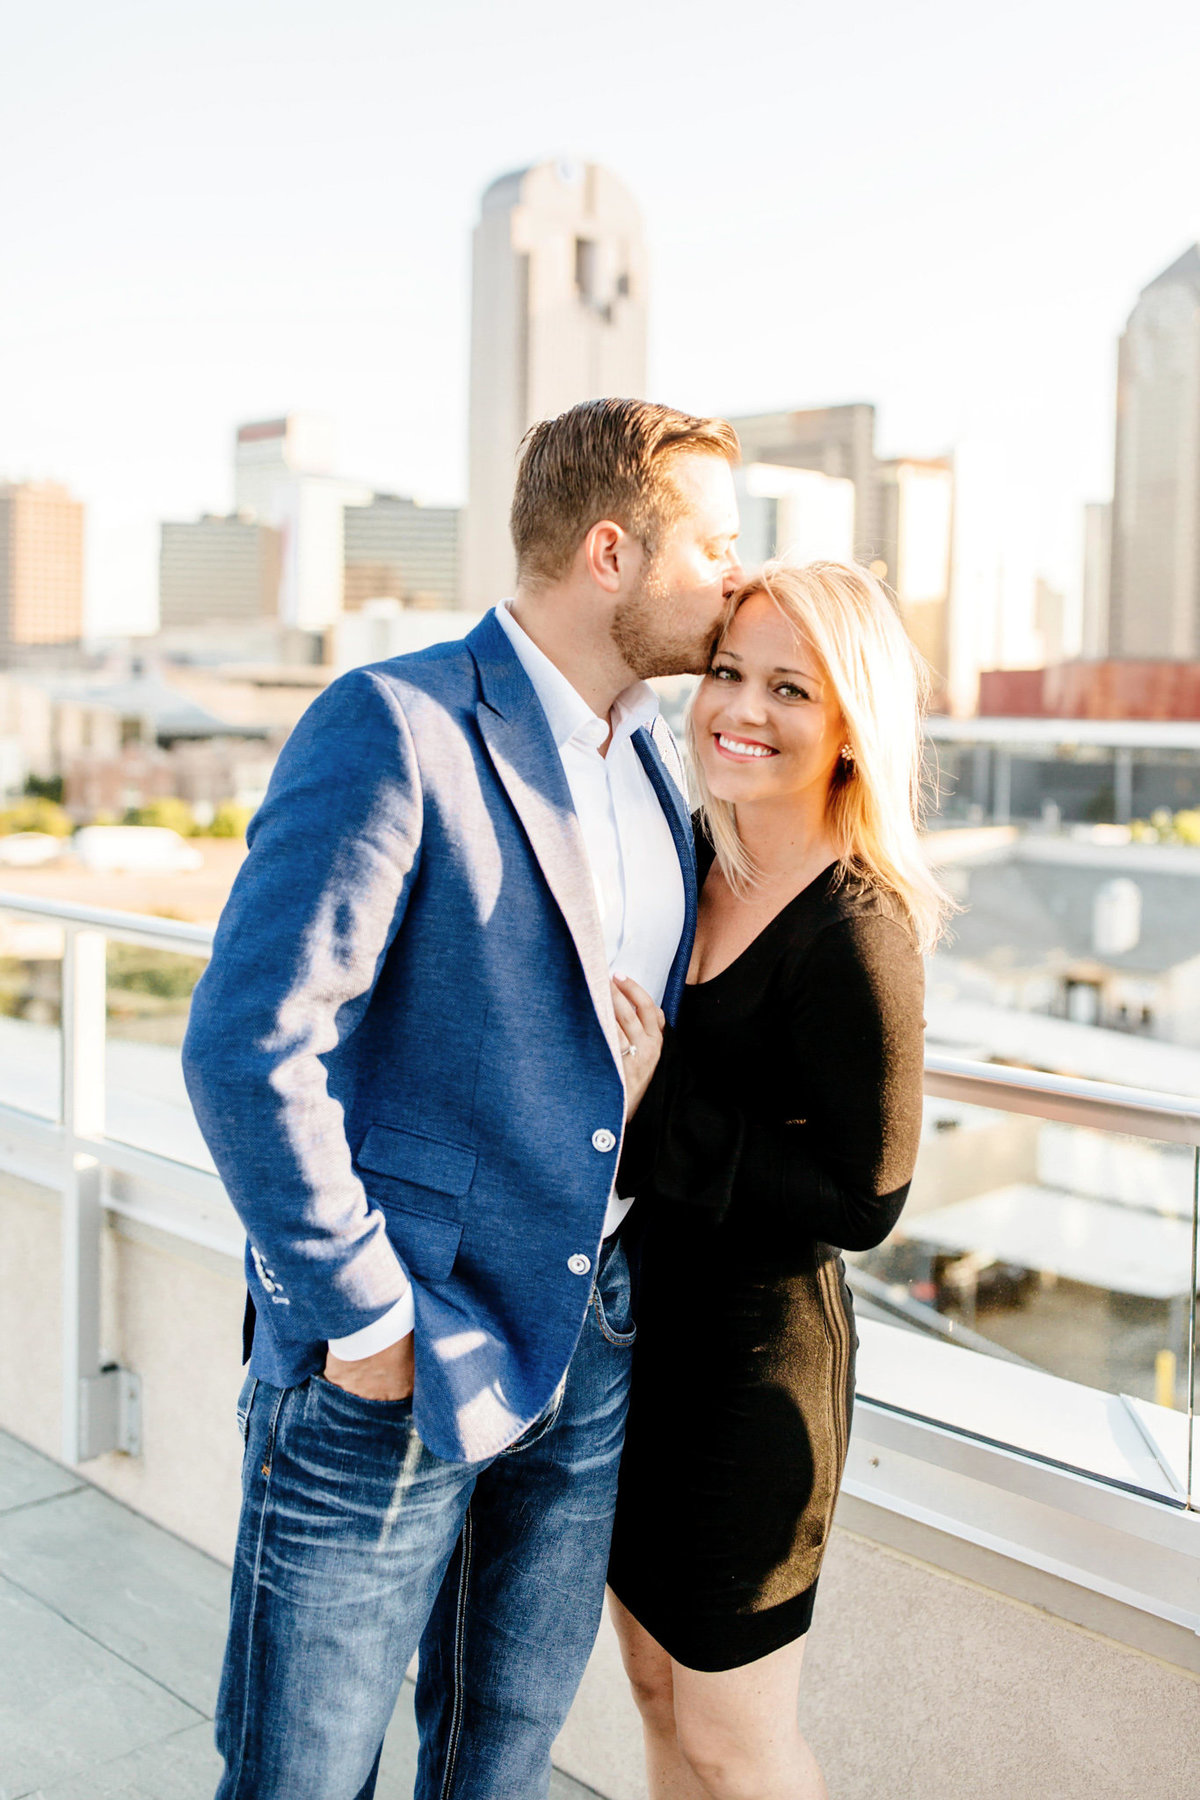 Eric & Megan - Downtown Dallas Rooftop Proposal & Engagement Session-66